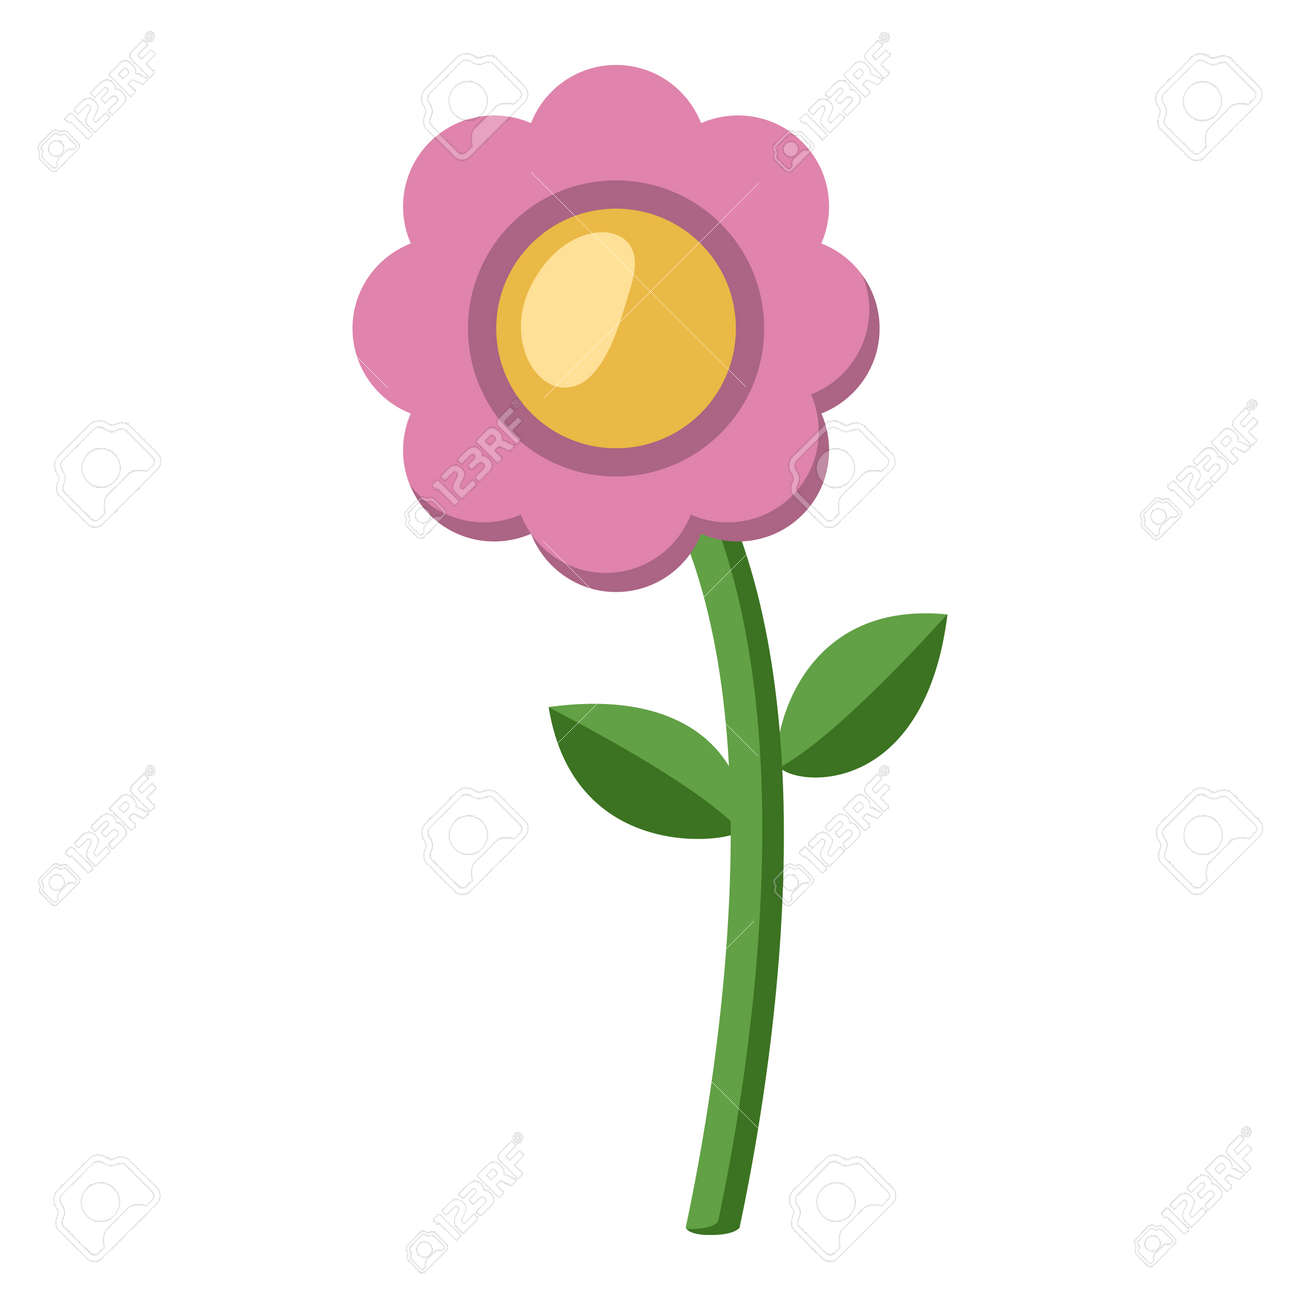 Vector Flower Color Flat Icon on White Background - 169351115